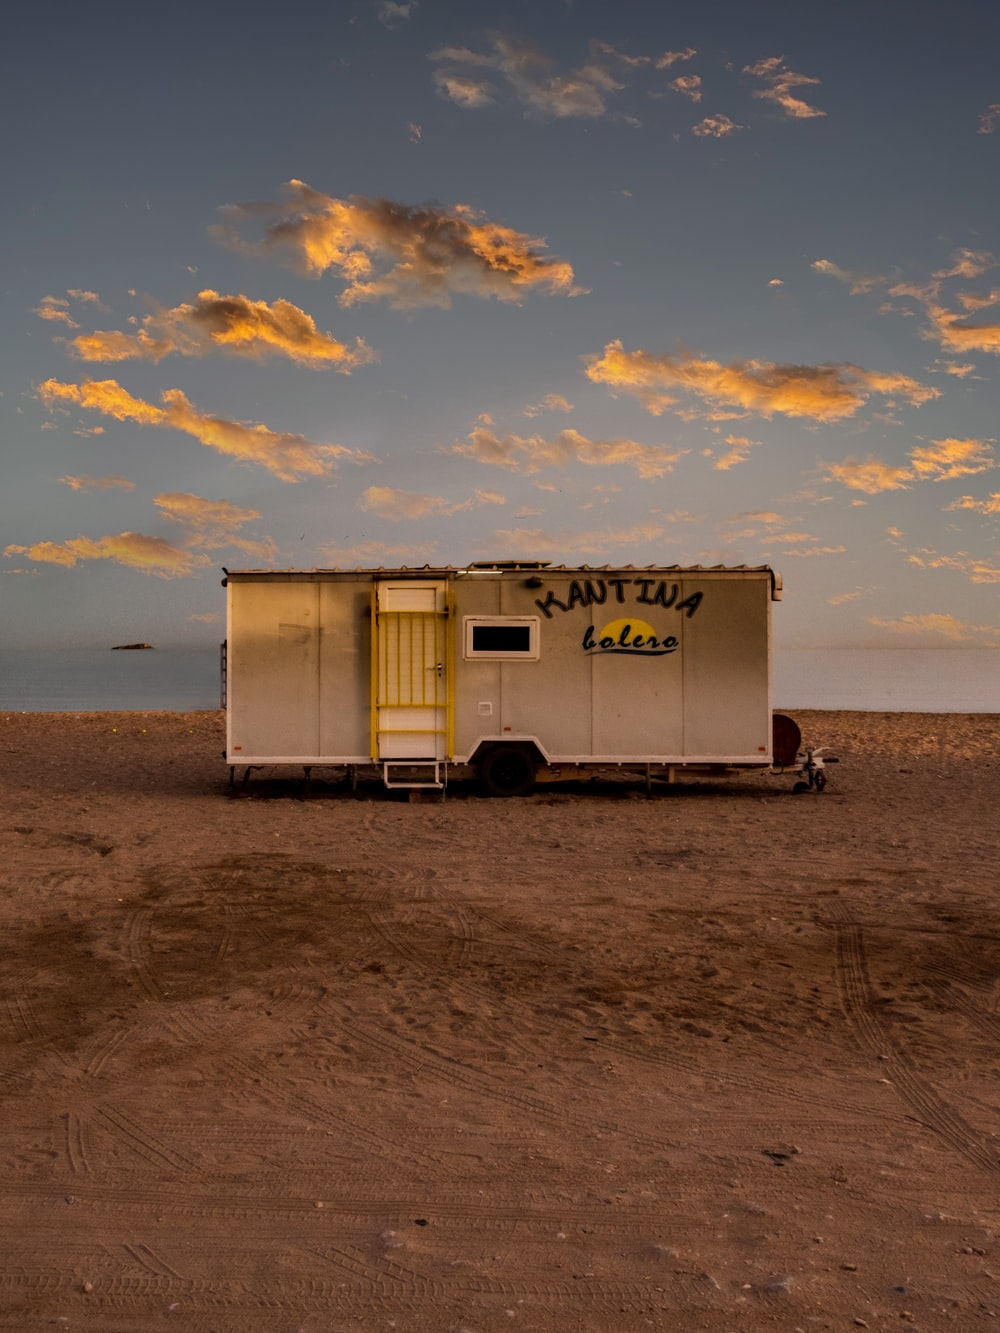 white and red camper trailer on beach during sunset